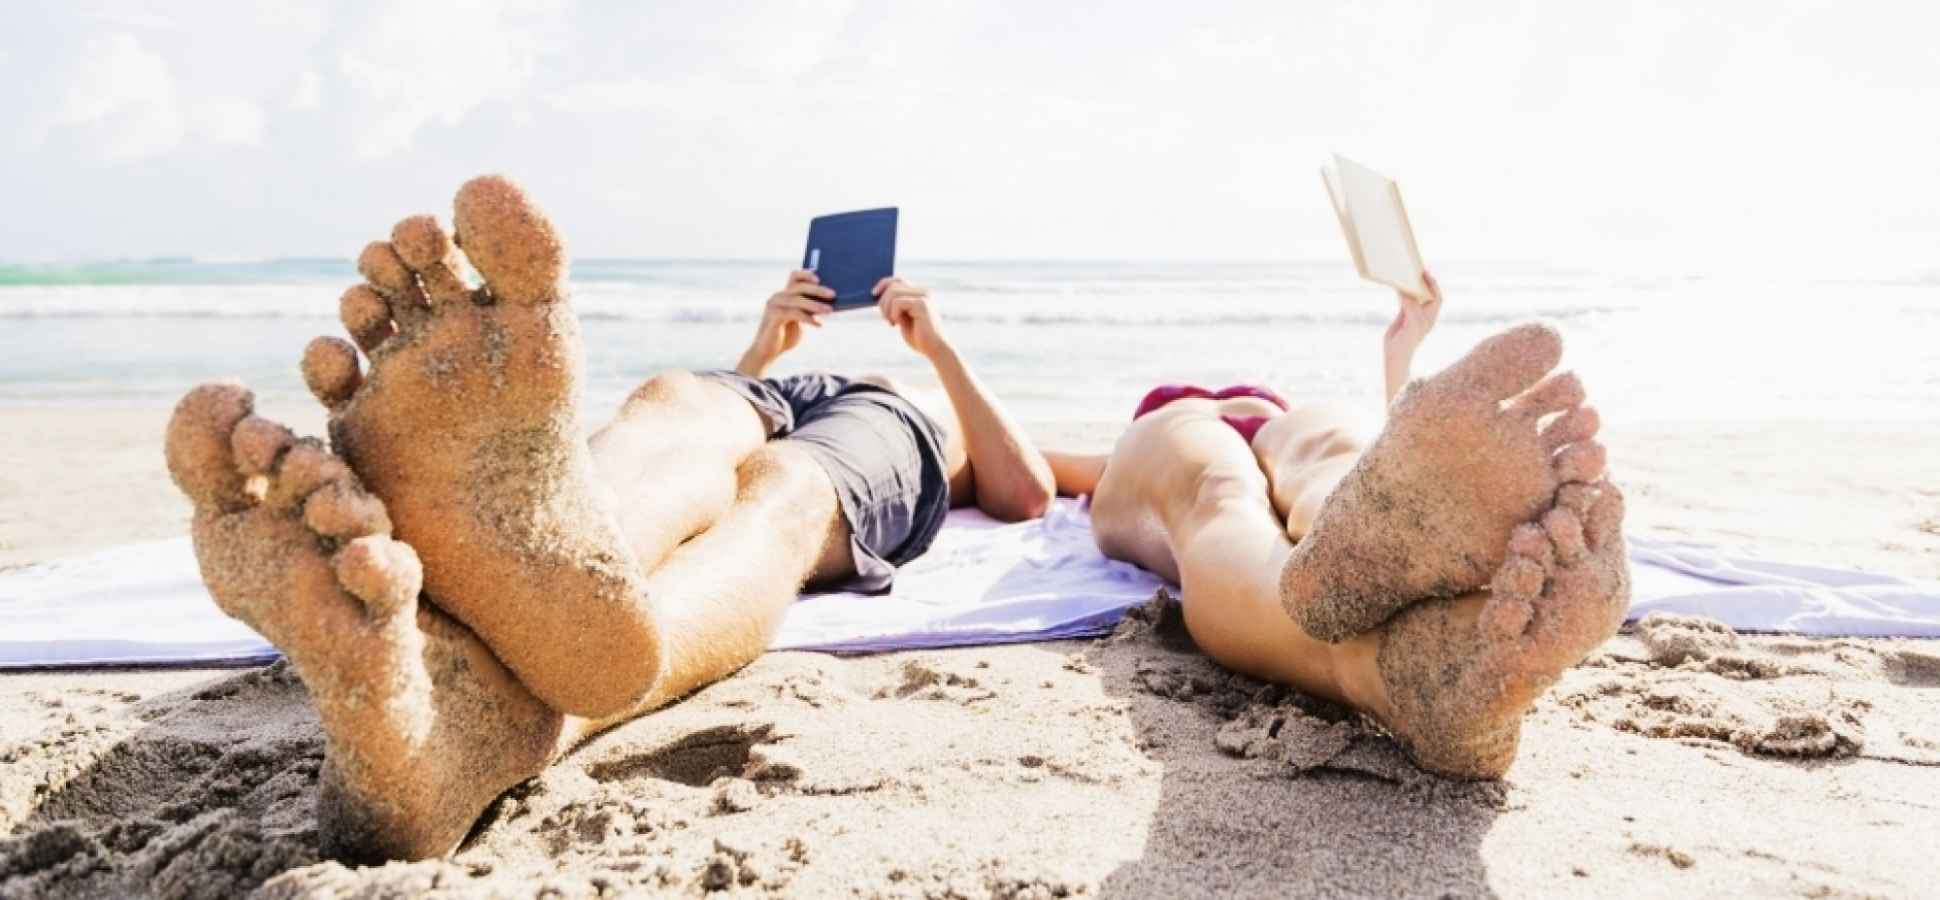 Book Critics Pick Their Top 15 Summer Reads